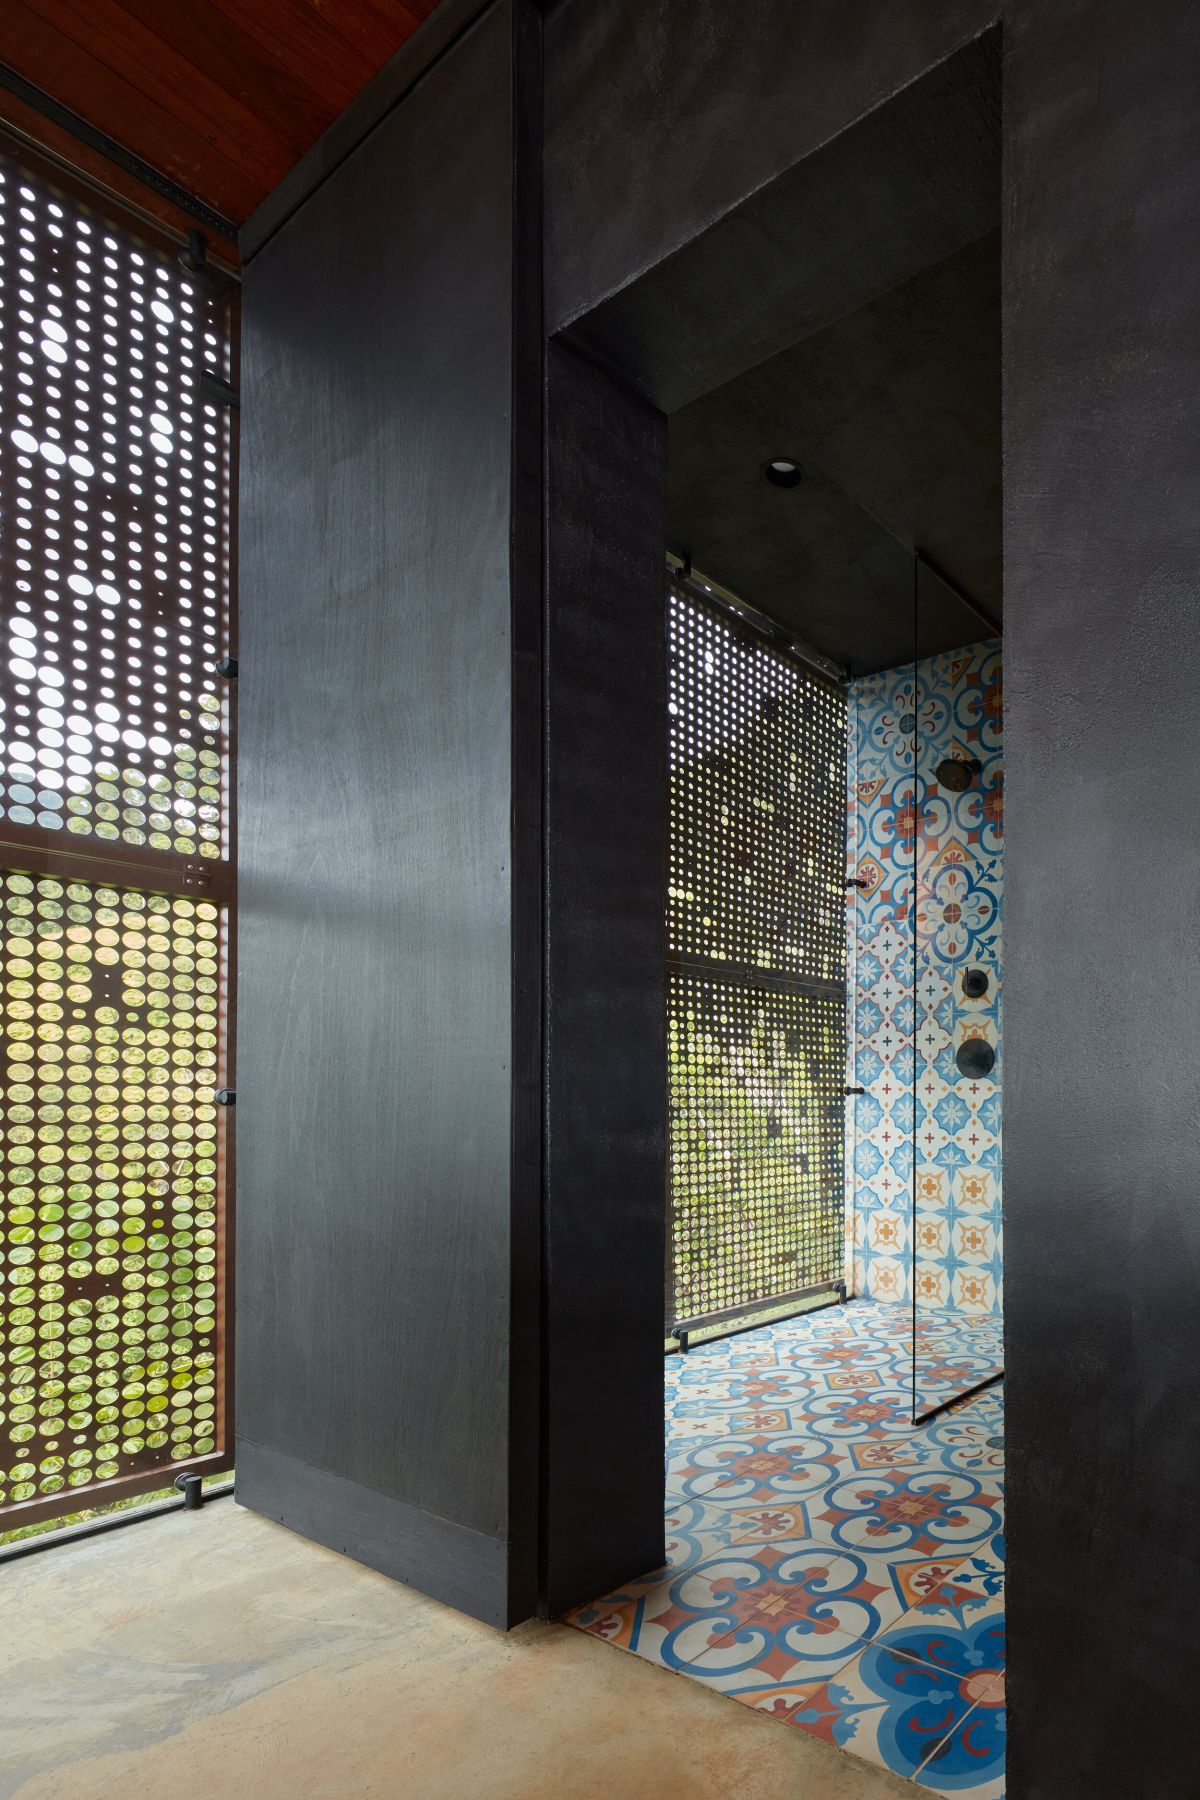 The shower spaces are done with the same bright tiles and there are perforated metal screens